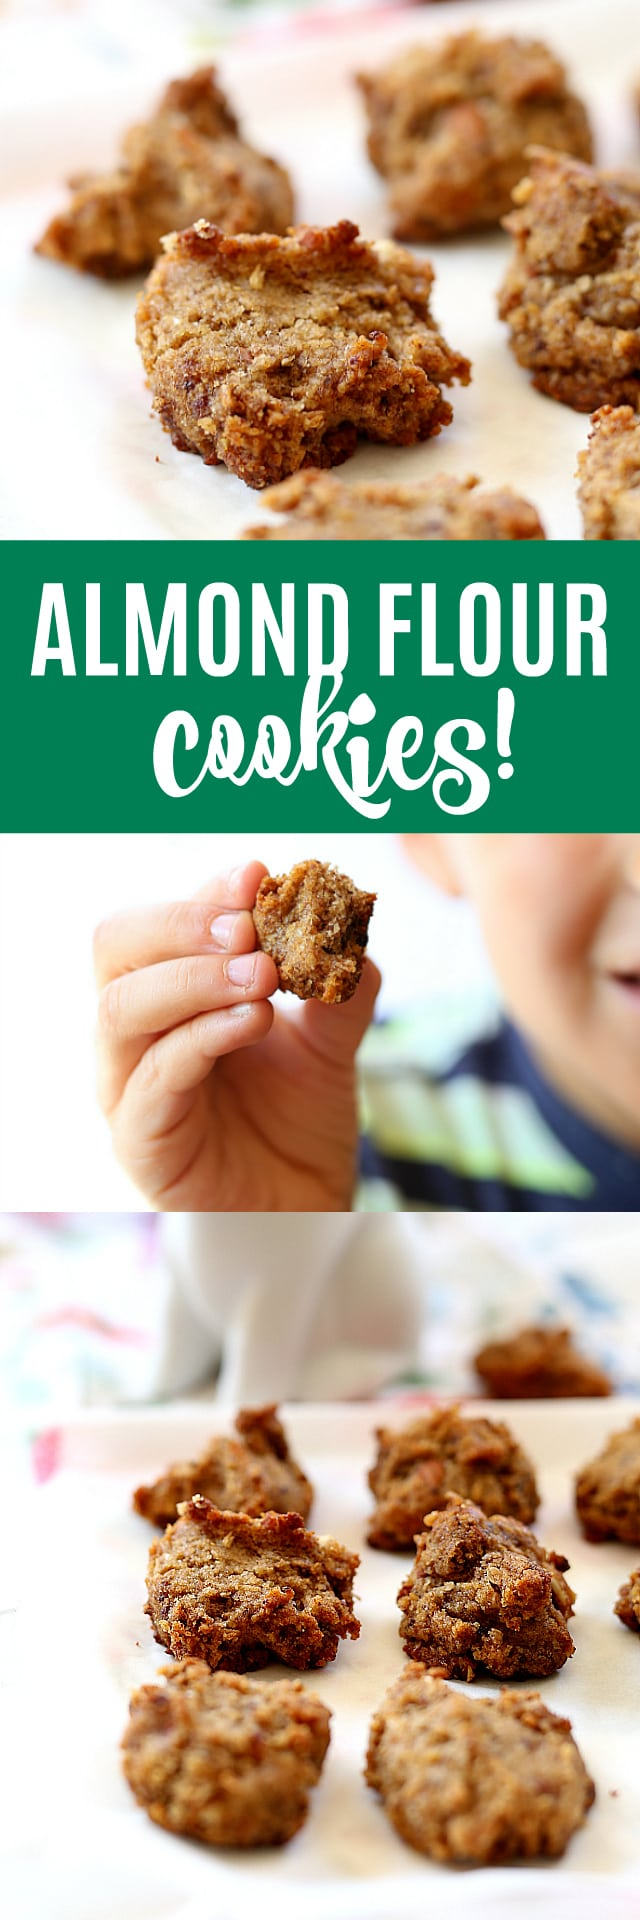 Miniature vegan almond meal treats perfected into bite size cookies! These grain free almond flour cookies naturally soothe a sweet tooth and are packed with healthy fats and nutrients!